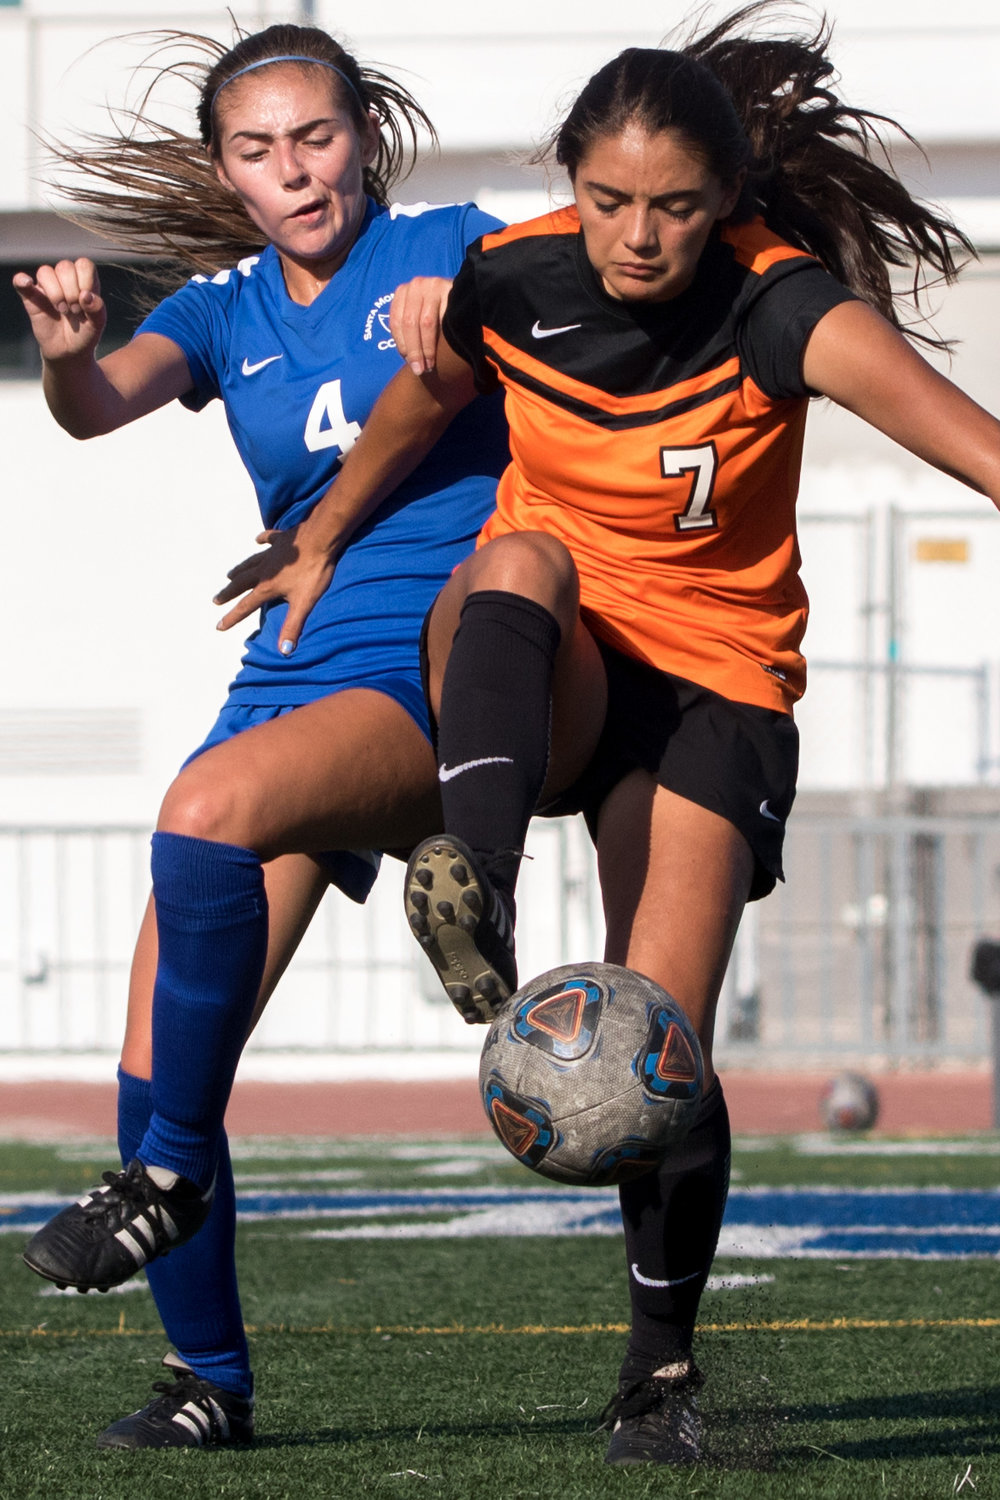 Santa Monica College freshman midfielder Paulina Sala (4, left) and Ventura College Pirates freshman midfielder Justine Reyes battle for control of the ball. The Corsairs were able to come out with a 2-1 victory at the Corsair Field located on Santa Monica Colleges Main Campus in Santa Monica California on September 26, 2017. (Photo By: Zane Meyer-Thornton)